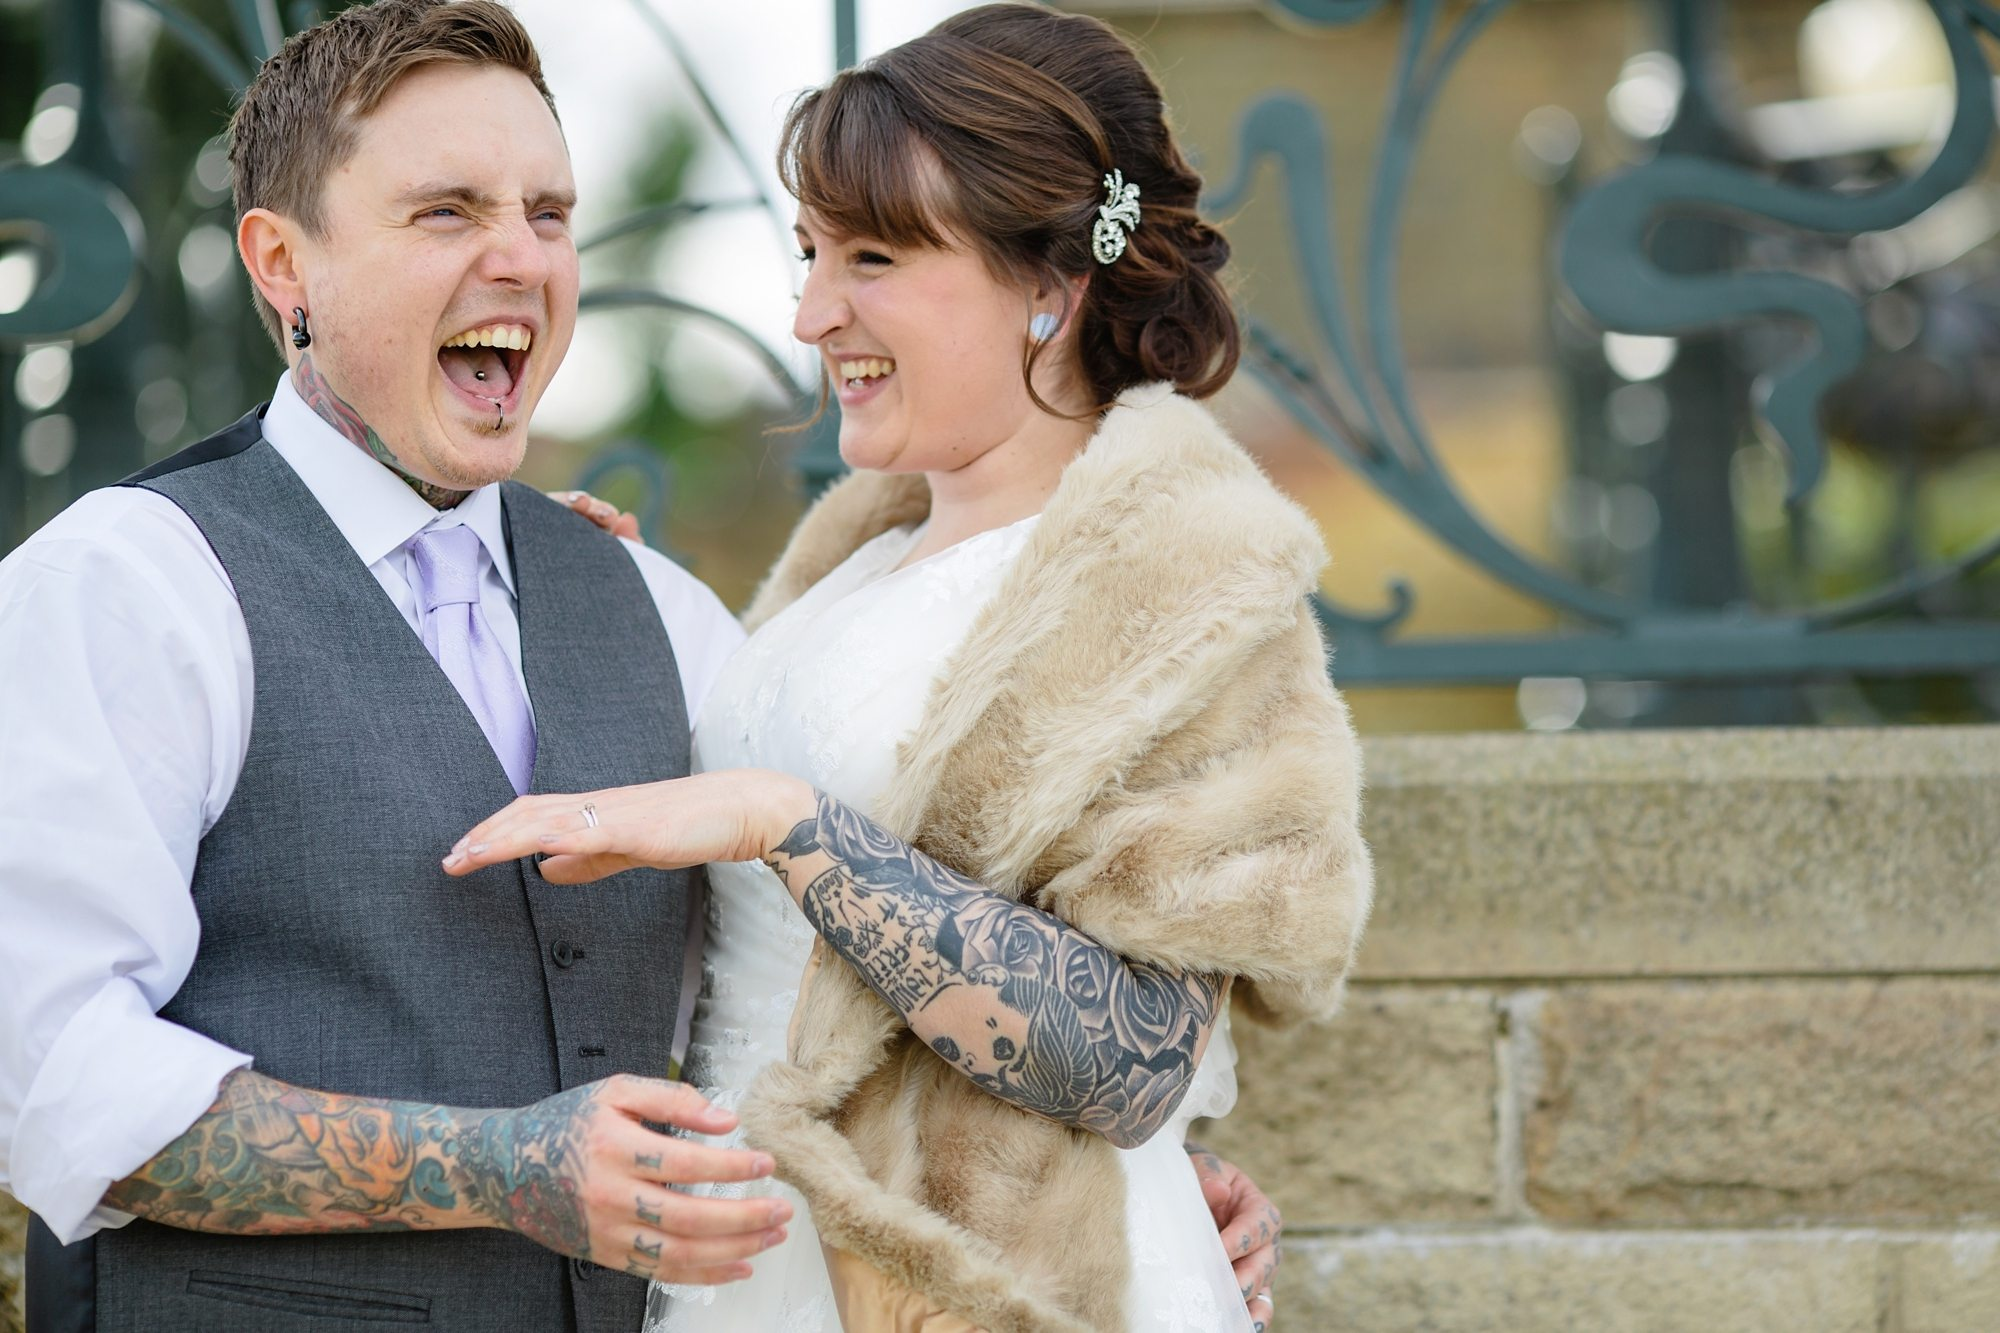 Tattoo Tips For Your Wedding Couple Laughing Fur Stole